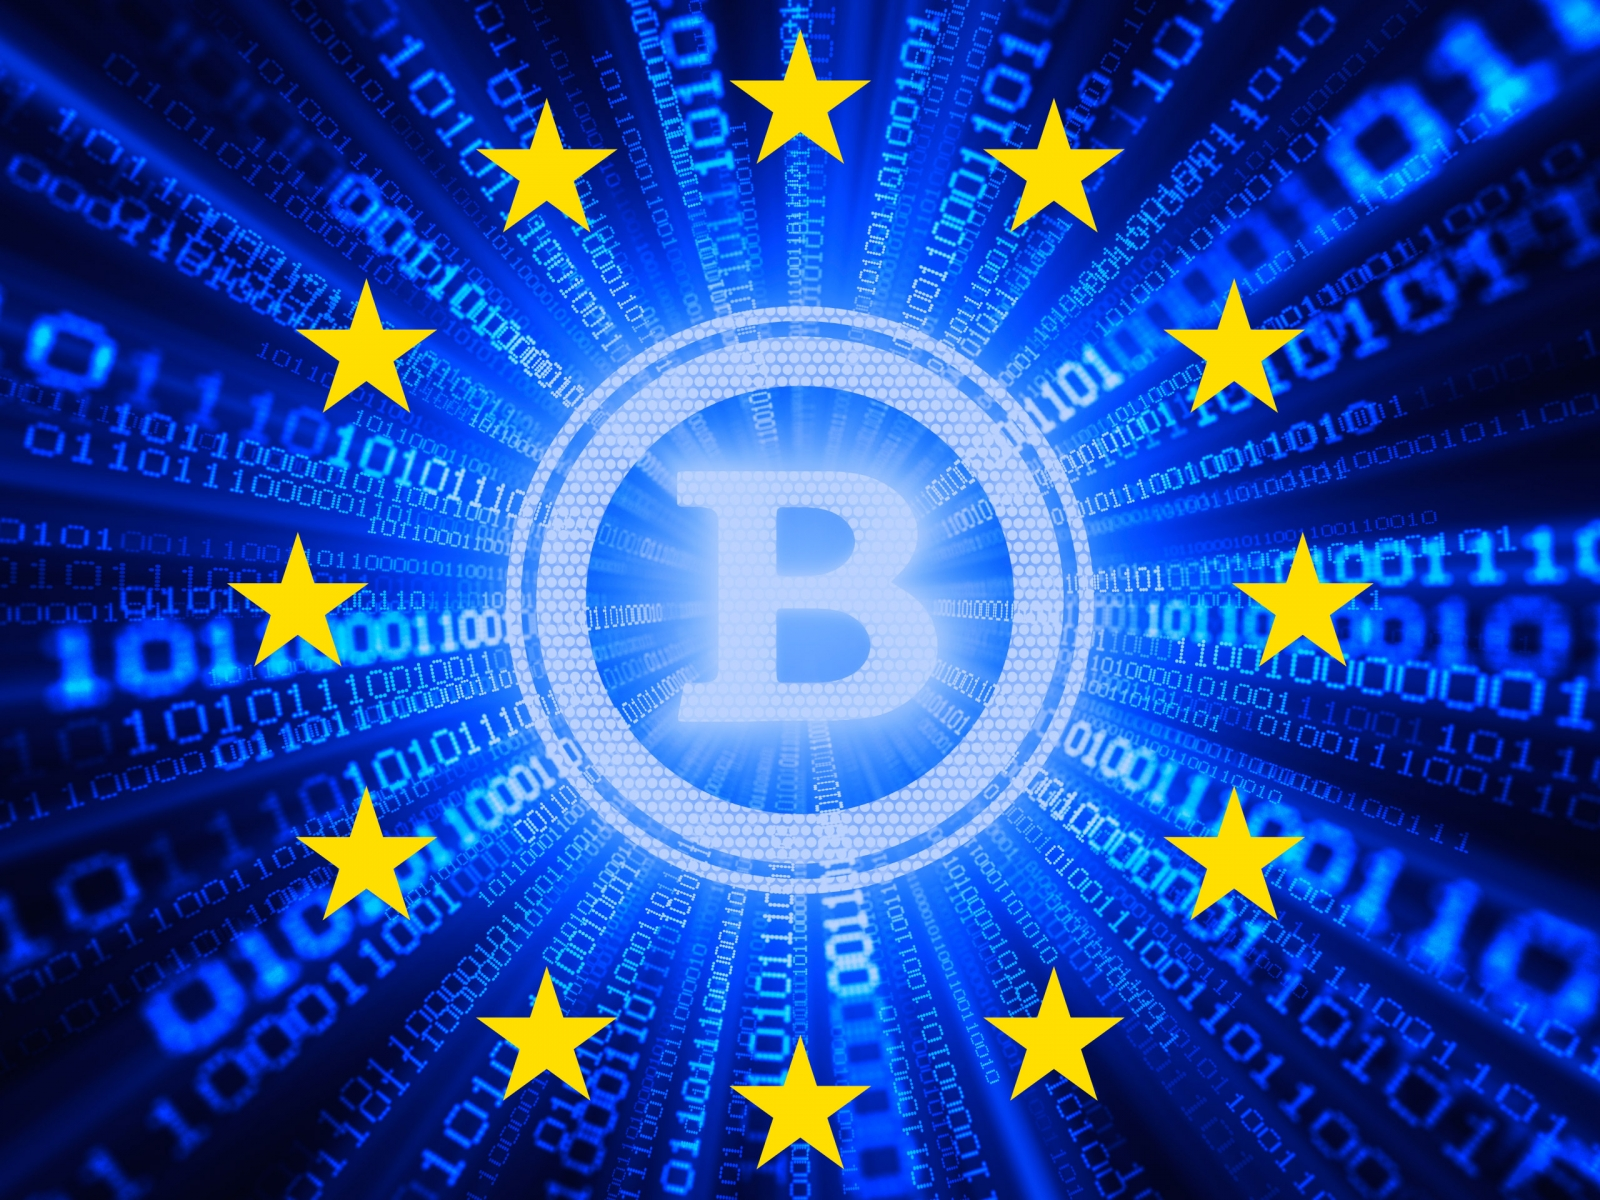 Fall Background Wallpaper Bitcoin Startups Talk About Brexit Price Spike And